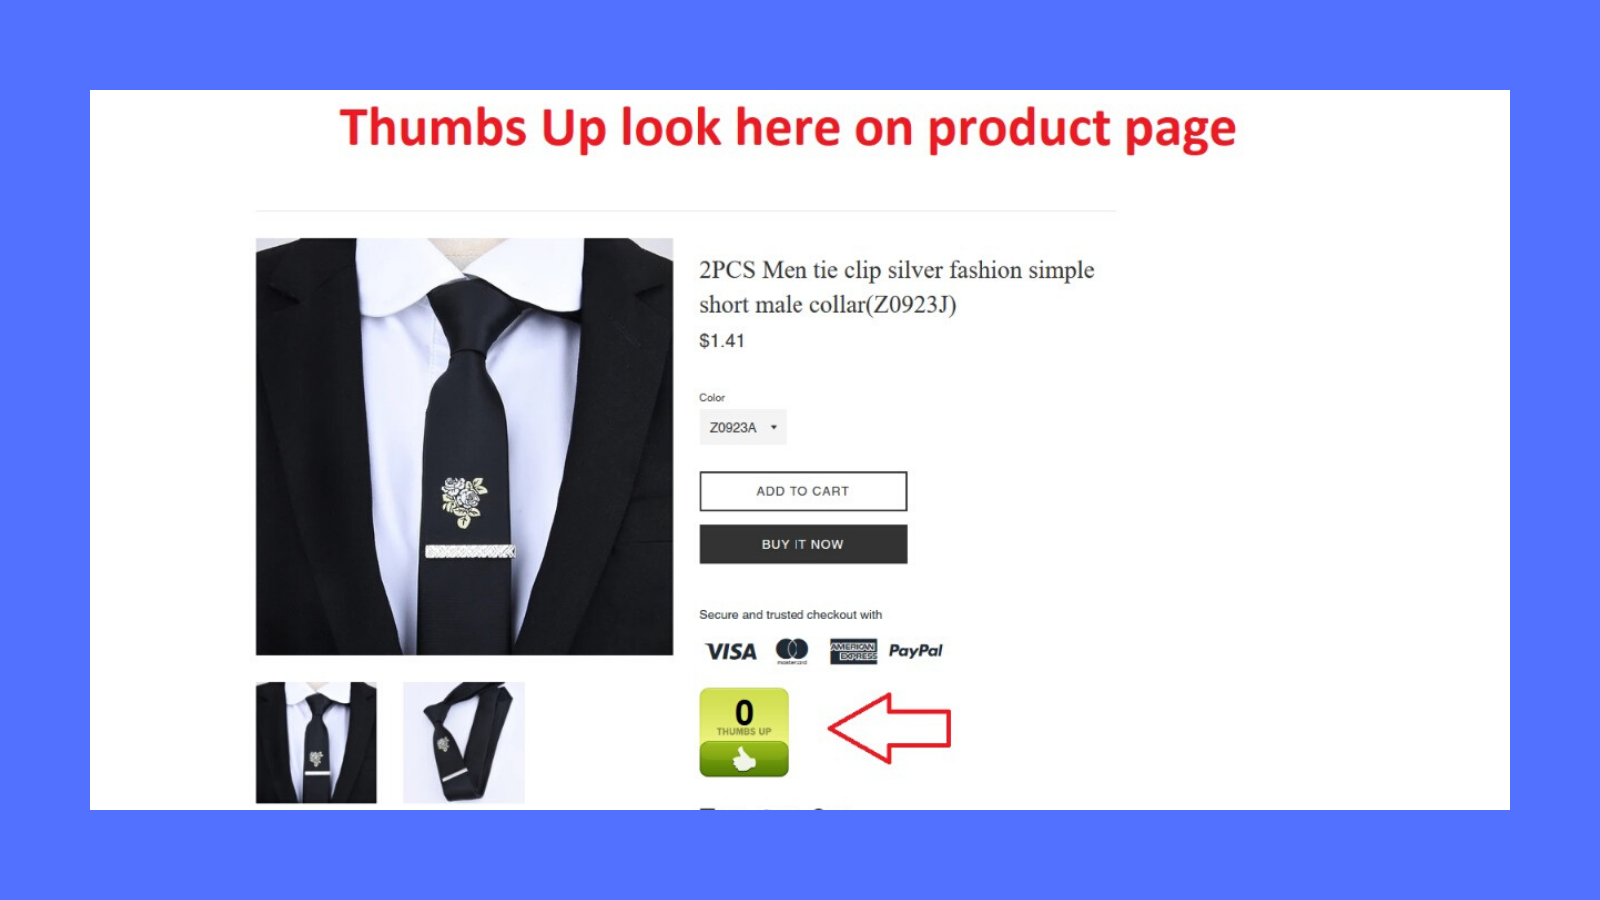 ThumbsUp provides you and easy way for users to see and vote